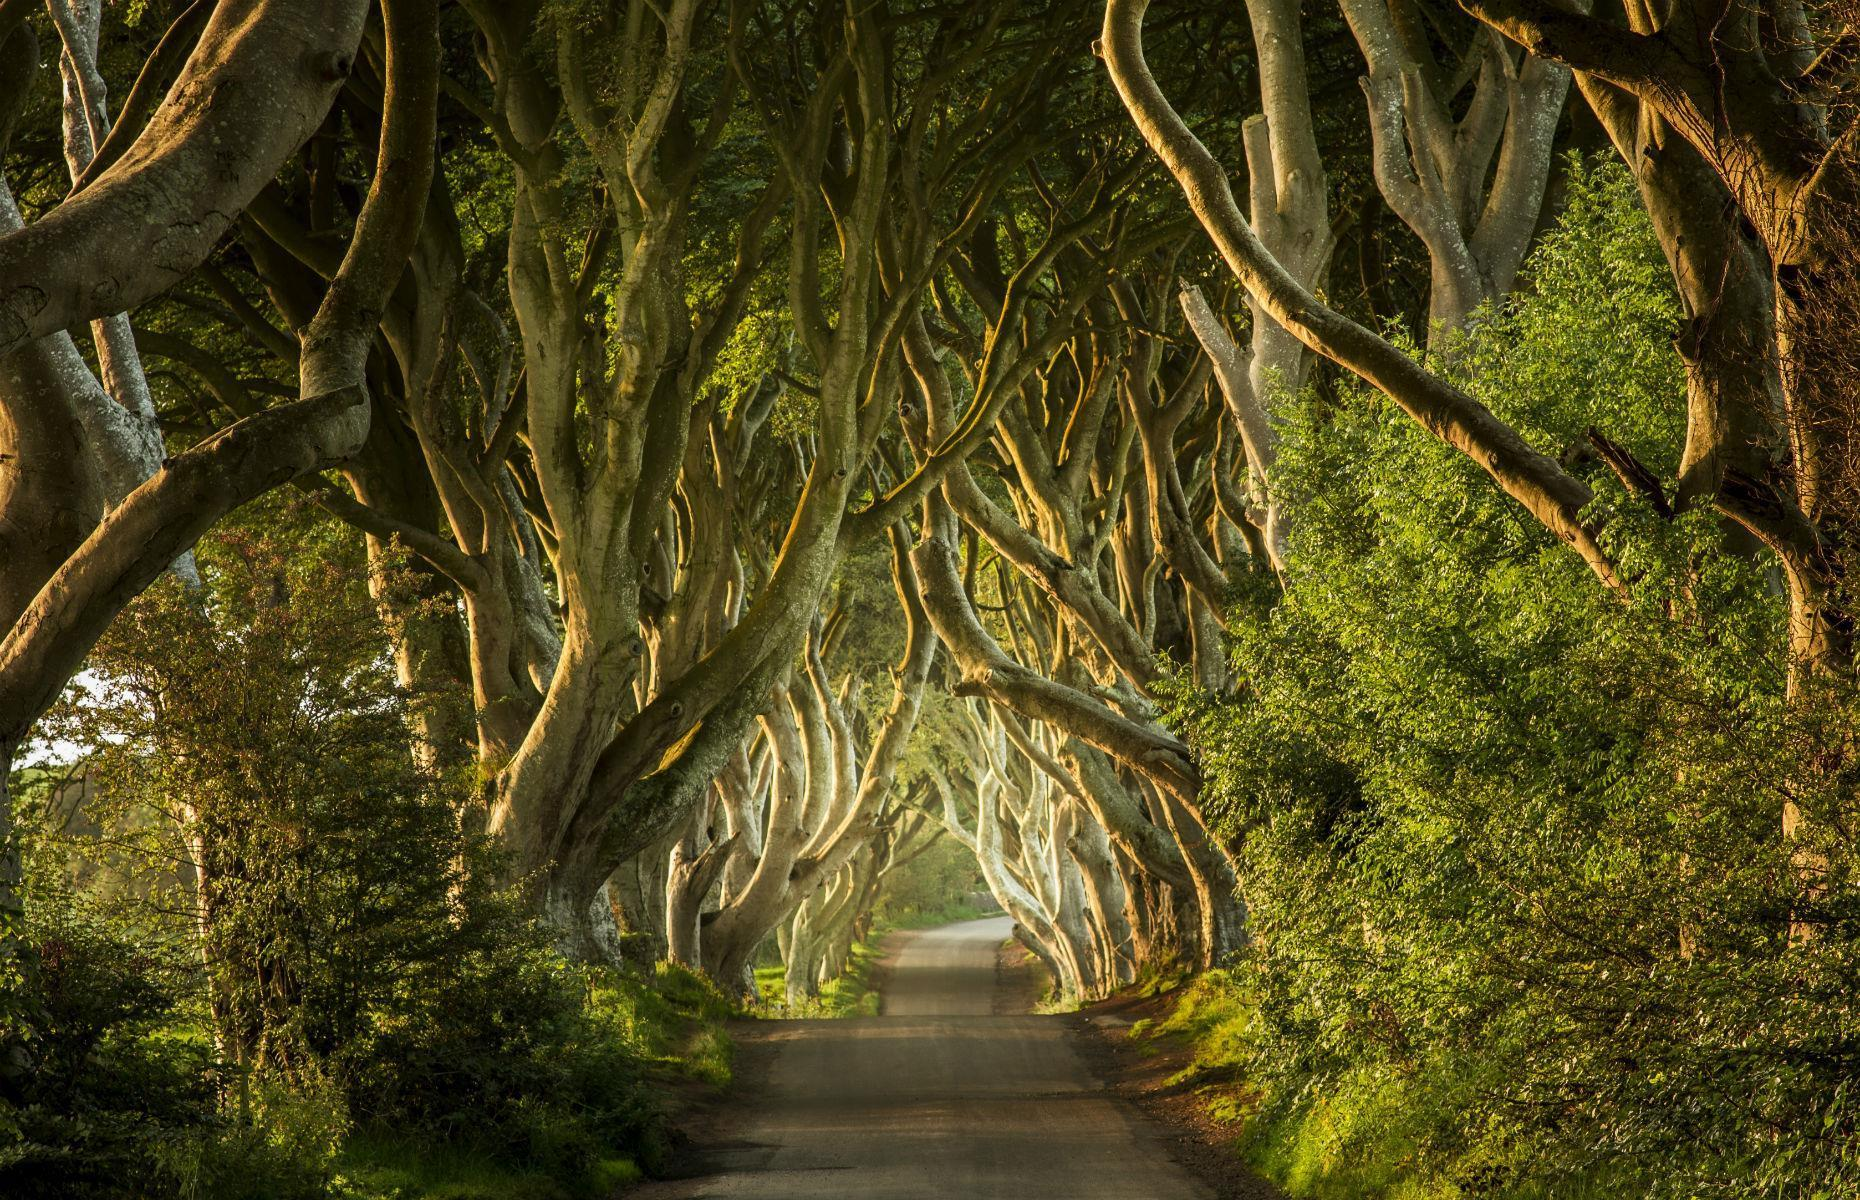 Slide 28 of 41: This haunting avenue of trees is best known for its appearance in fantasy series Game of Thrones. It doubled as the Kingsroad in the cult TV show, though it was originally planted in the 1700s by the Stuart family, who wanted an imposing entryway to their mansion, Gracehill House. Today the bowing beech trees are purported haunted by a specter named the Grey Lady. These are the most mysterious places in the world.